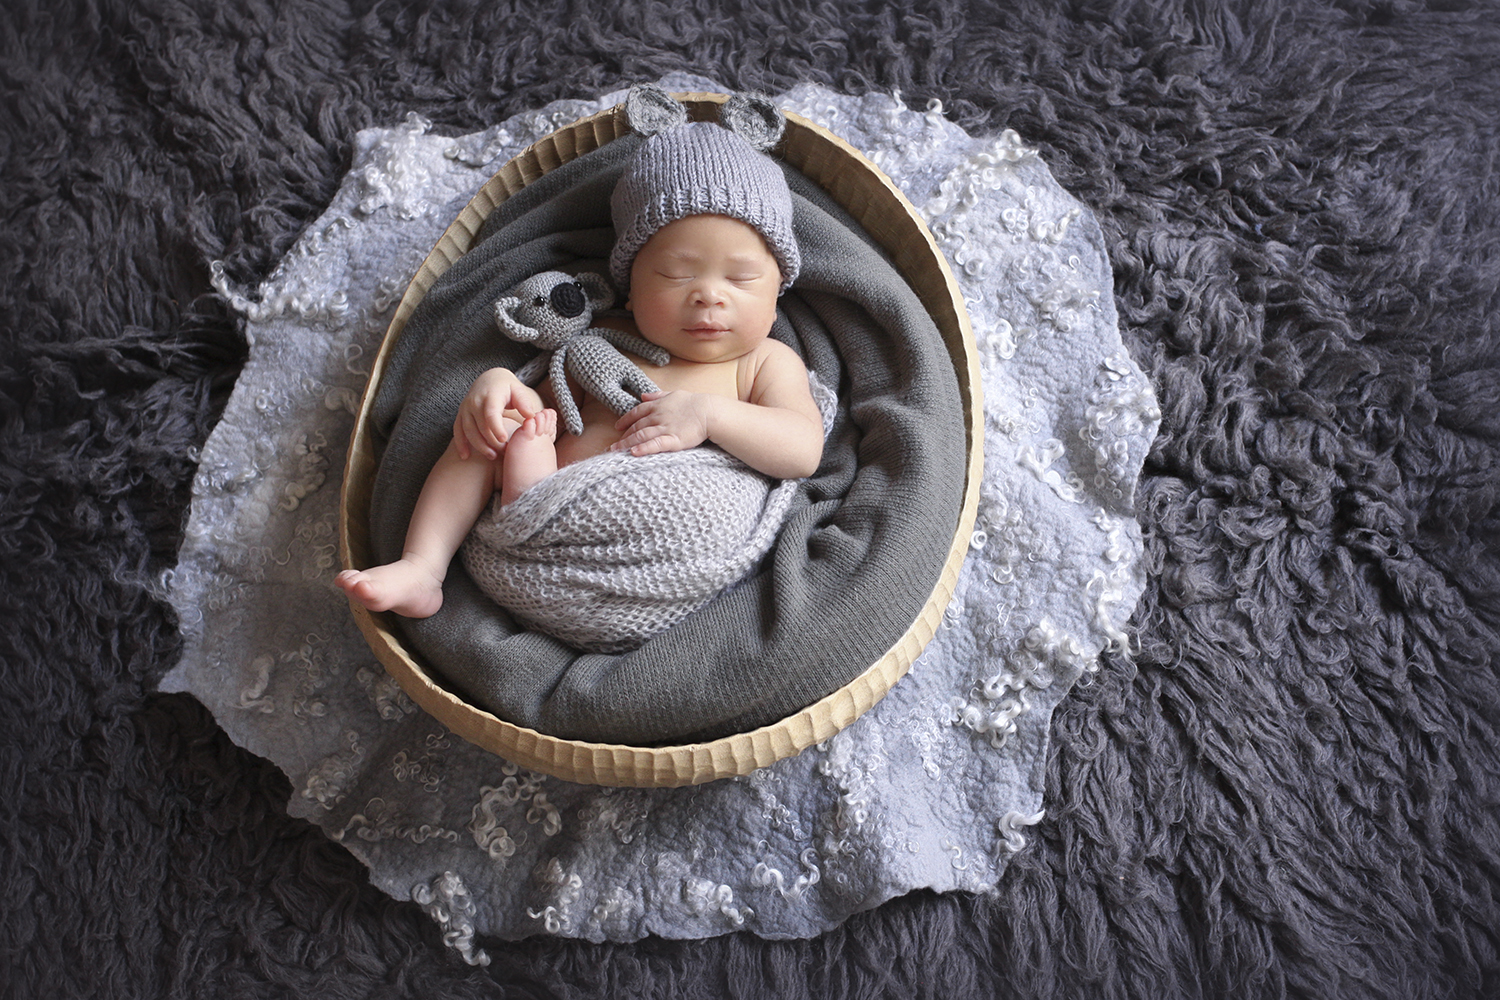 Newborn baby boy sleeping in oval wooden bowl on grey fur with grey curly felt and grey blanket and wrap and bear bonnet and knit koala toy